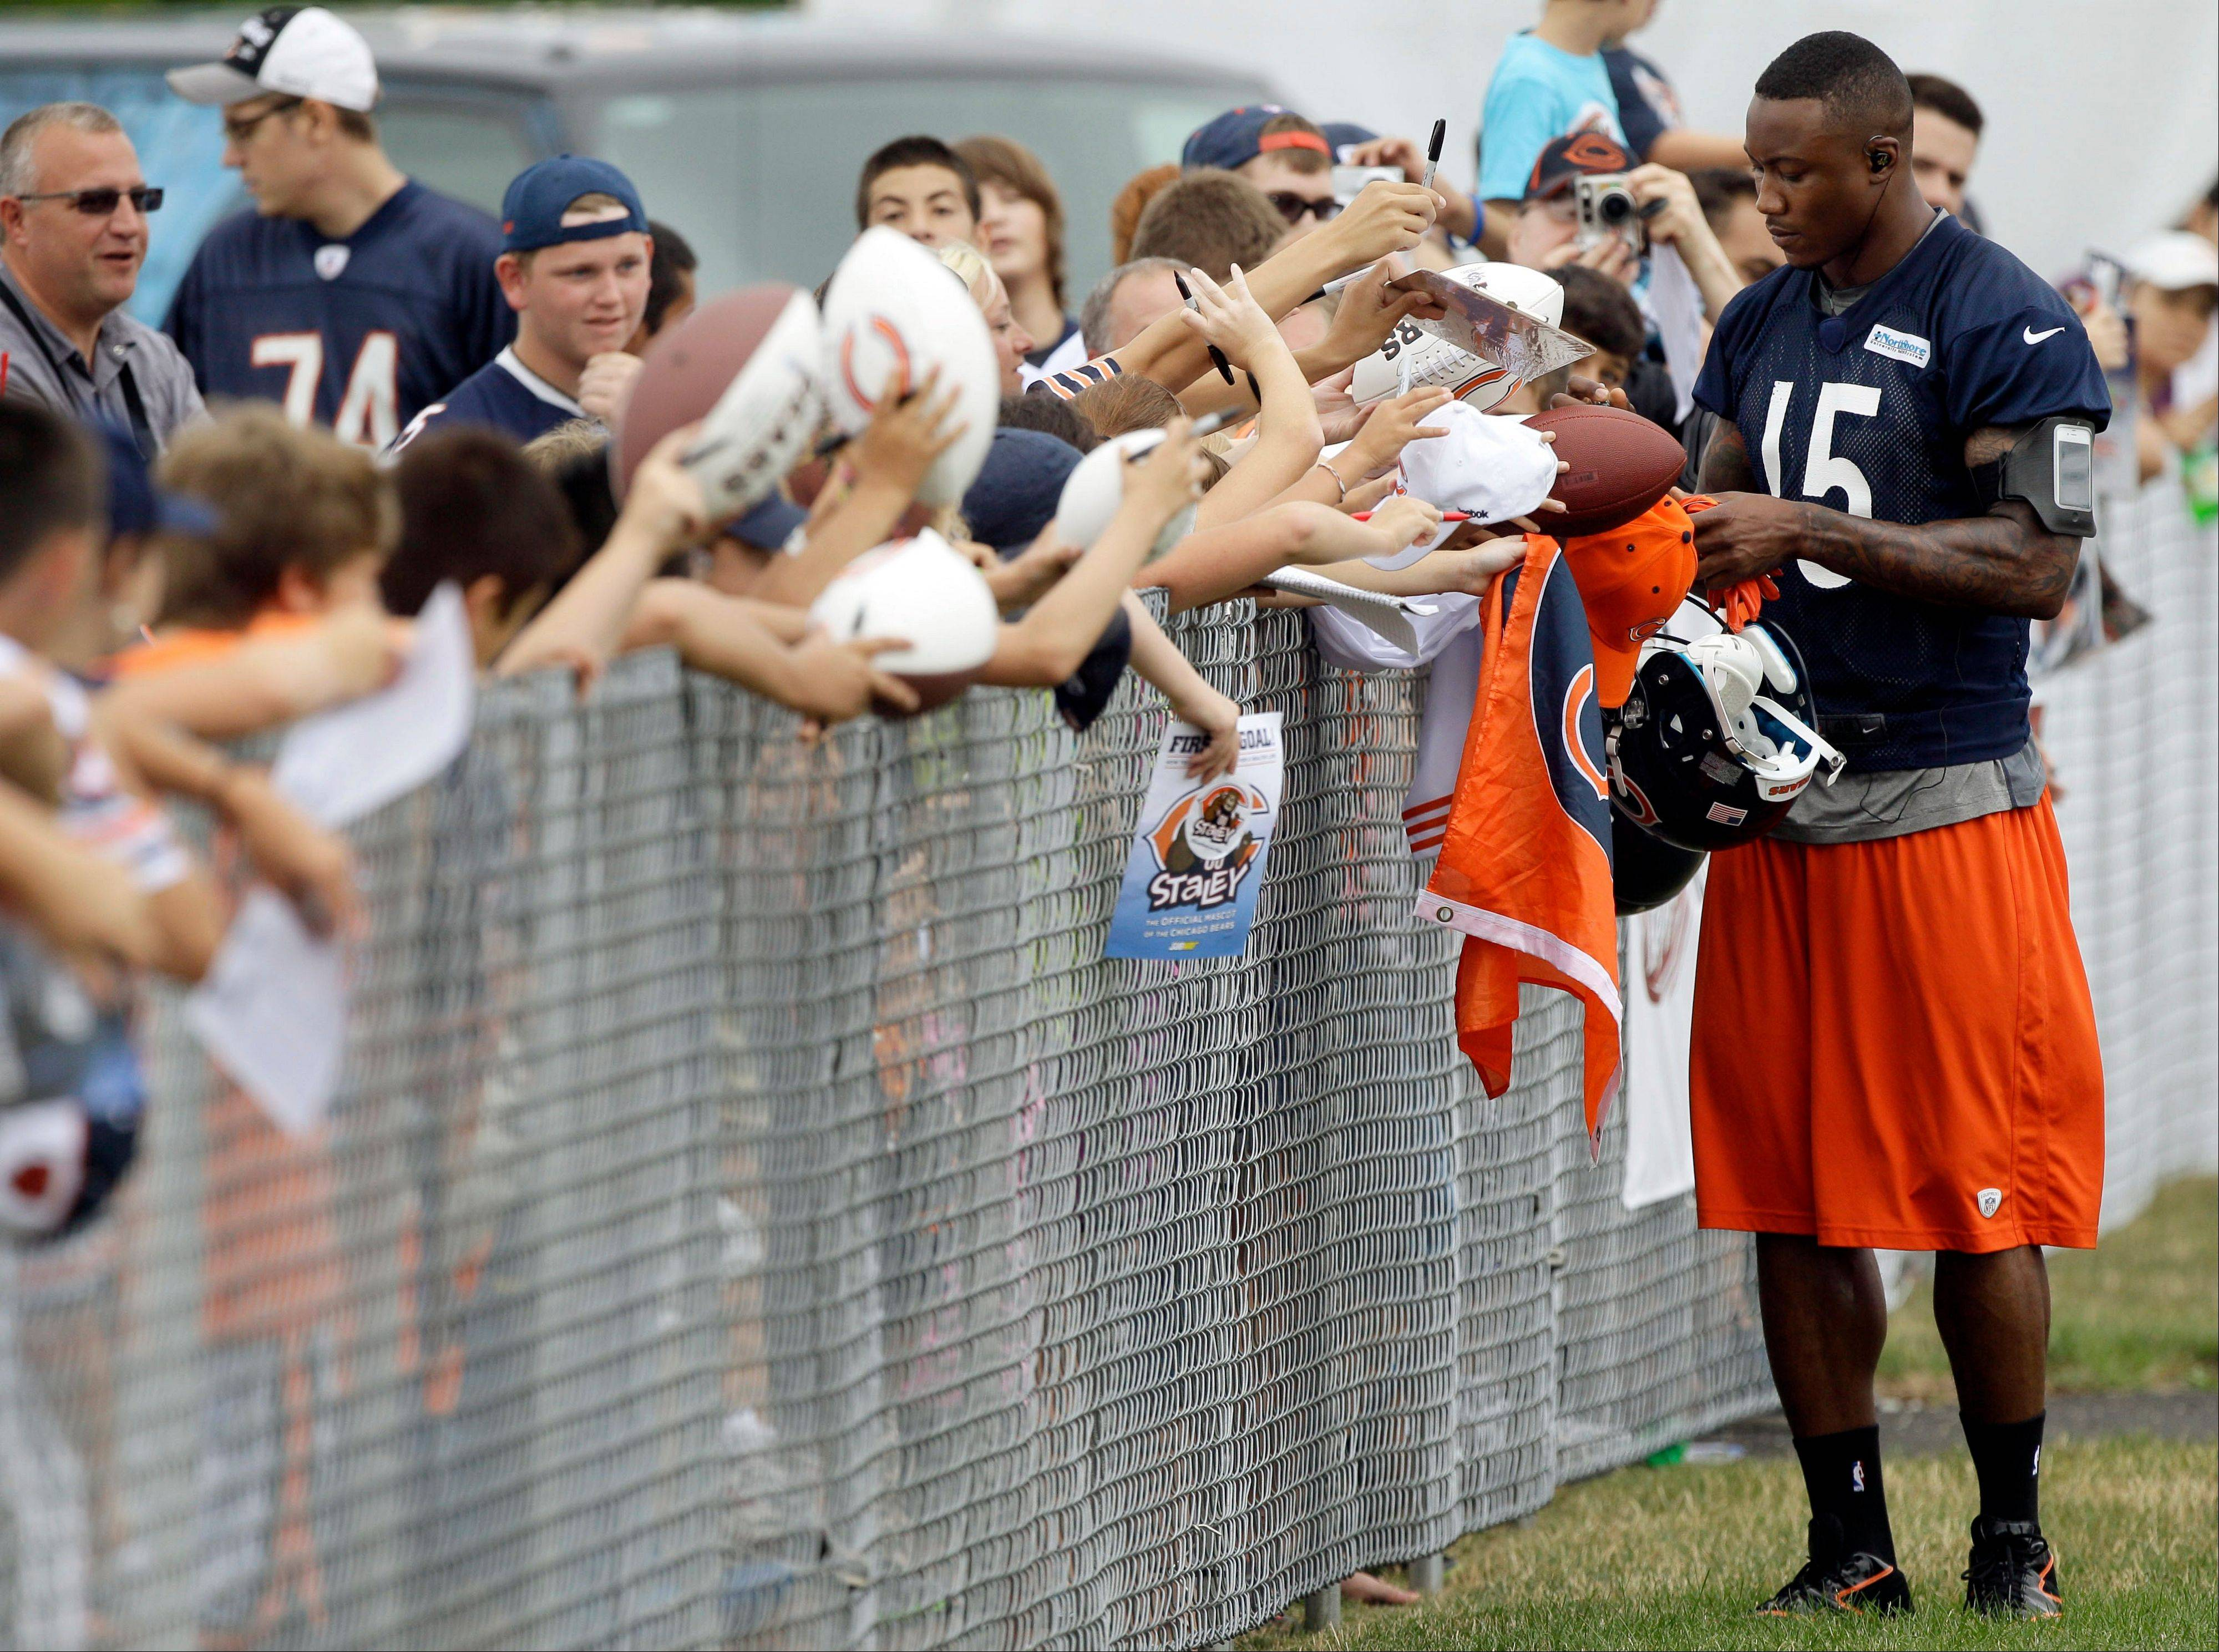 Bears wide receiver Brandon Marshall signs autographs Thursday at Olivet Nazarene University.